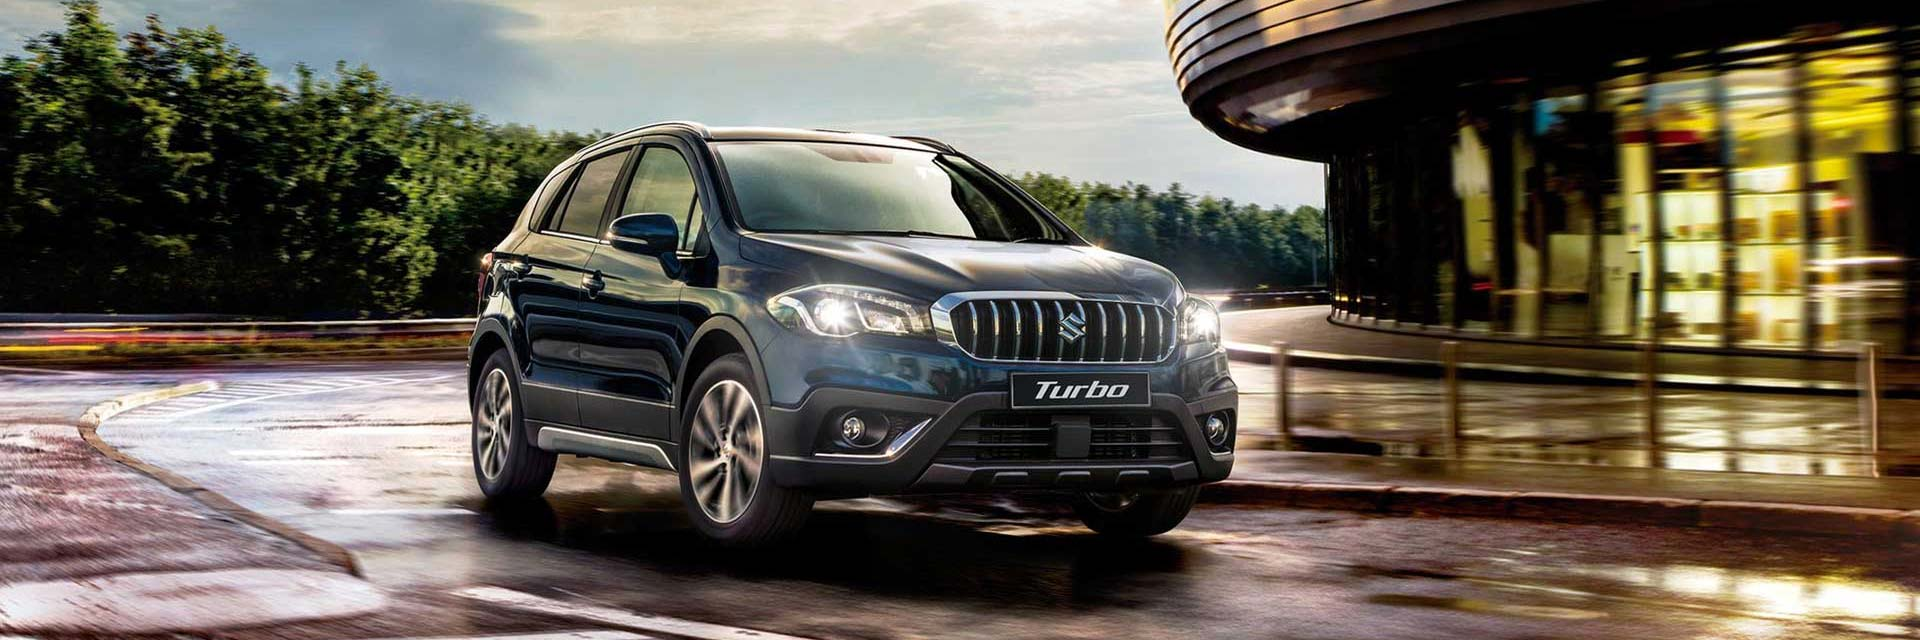 S-Cross Styling that gets noticed